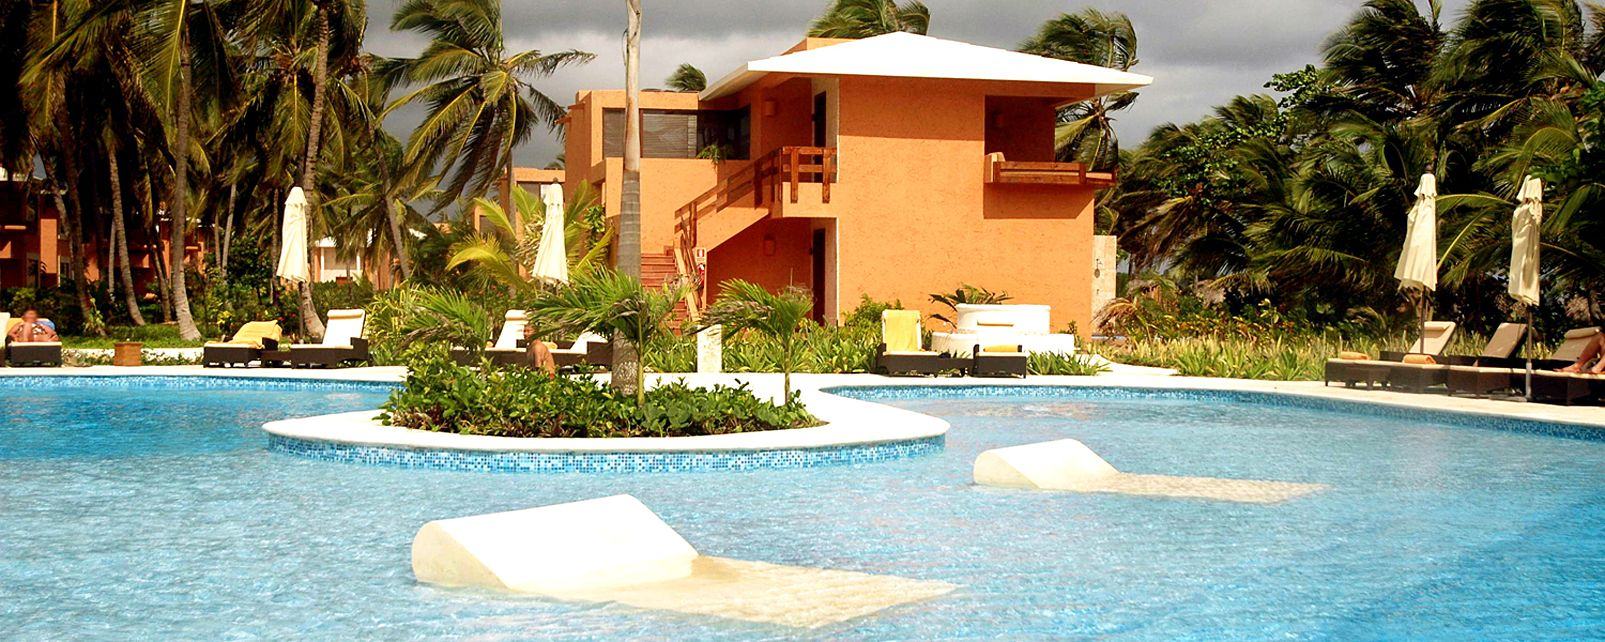 Hotel Sivory Punta Cana by Portblue Boutique